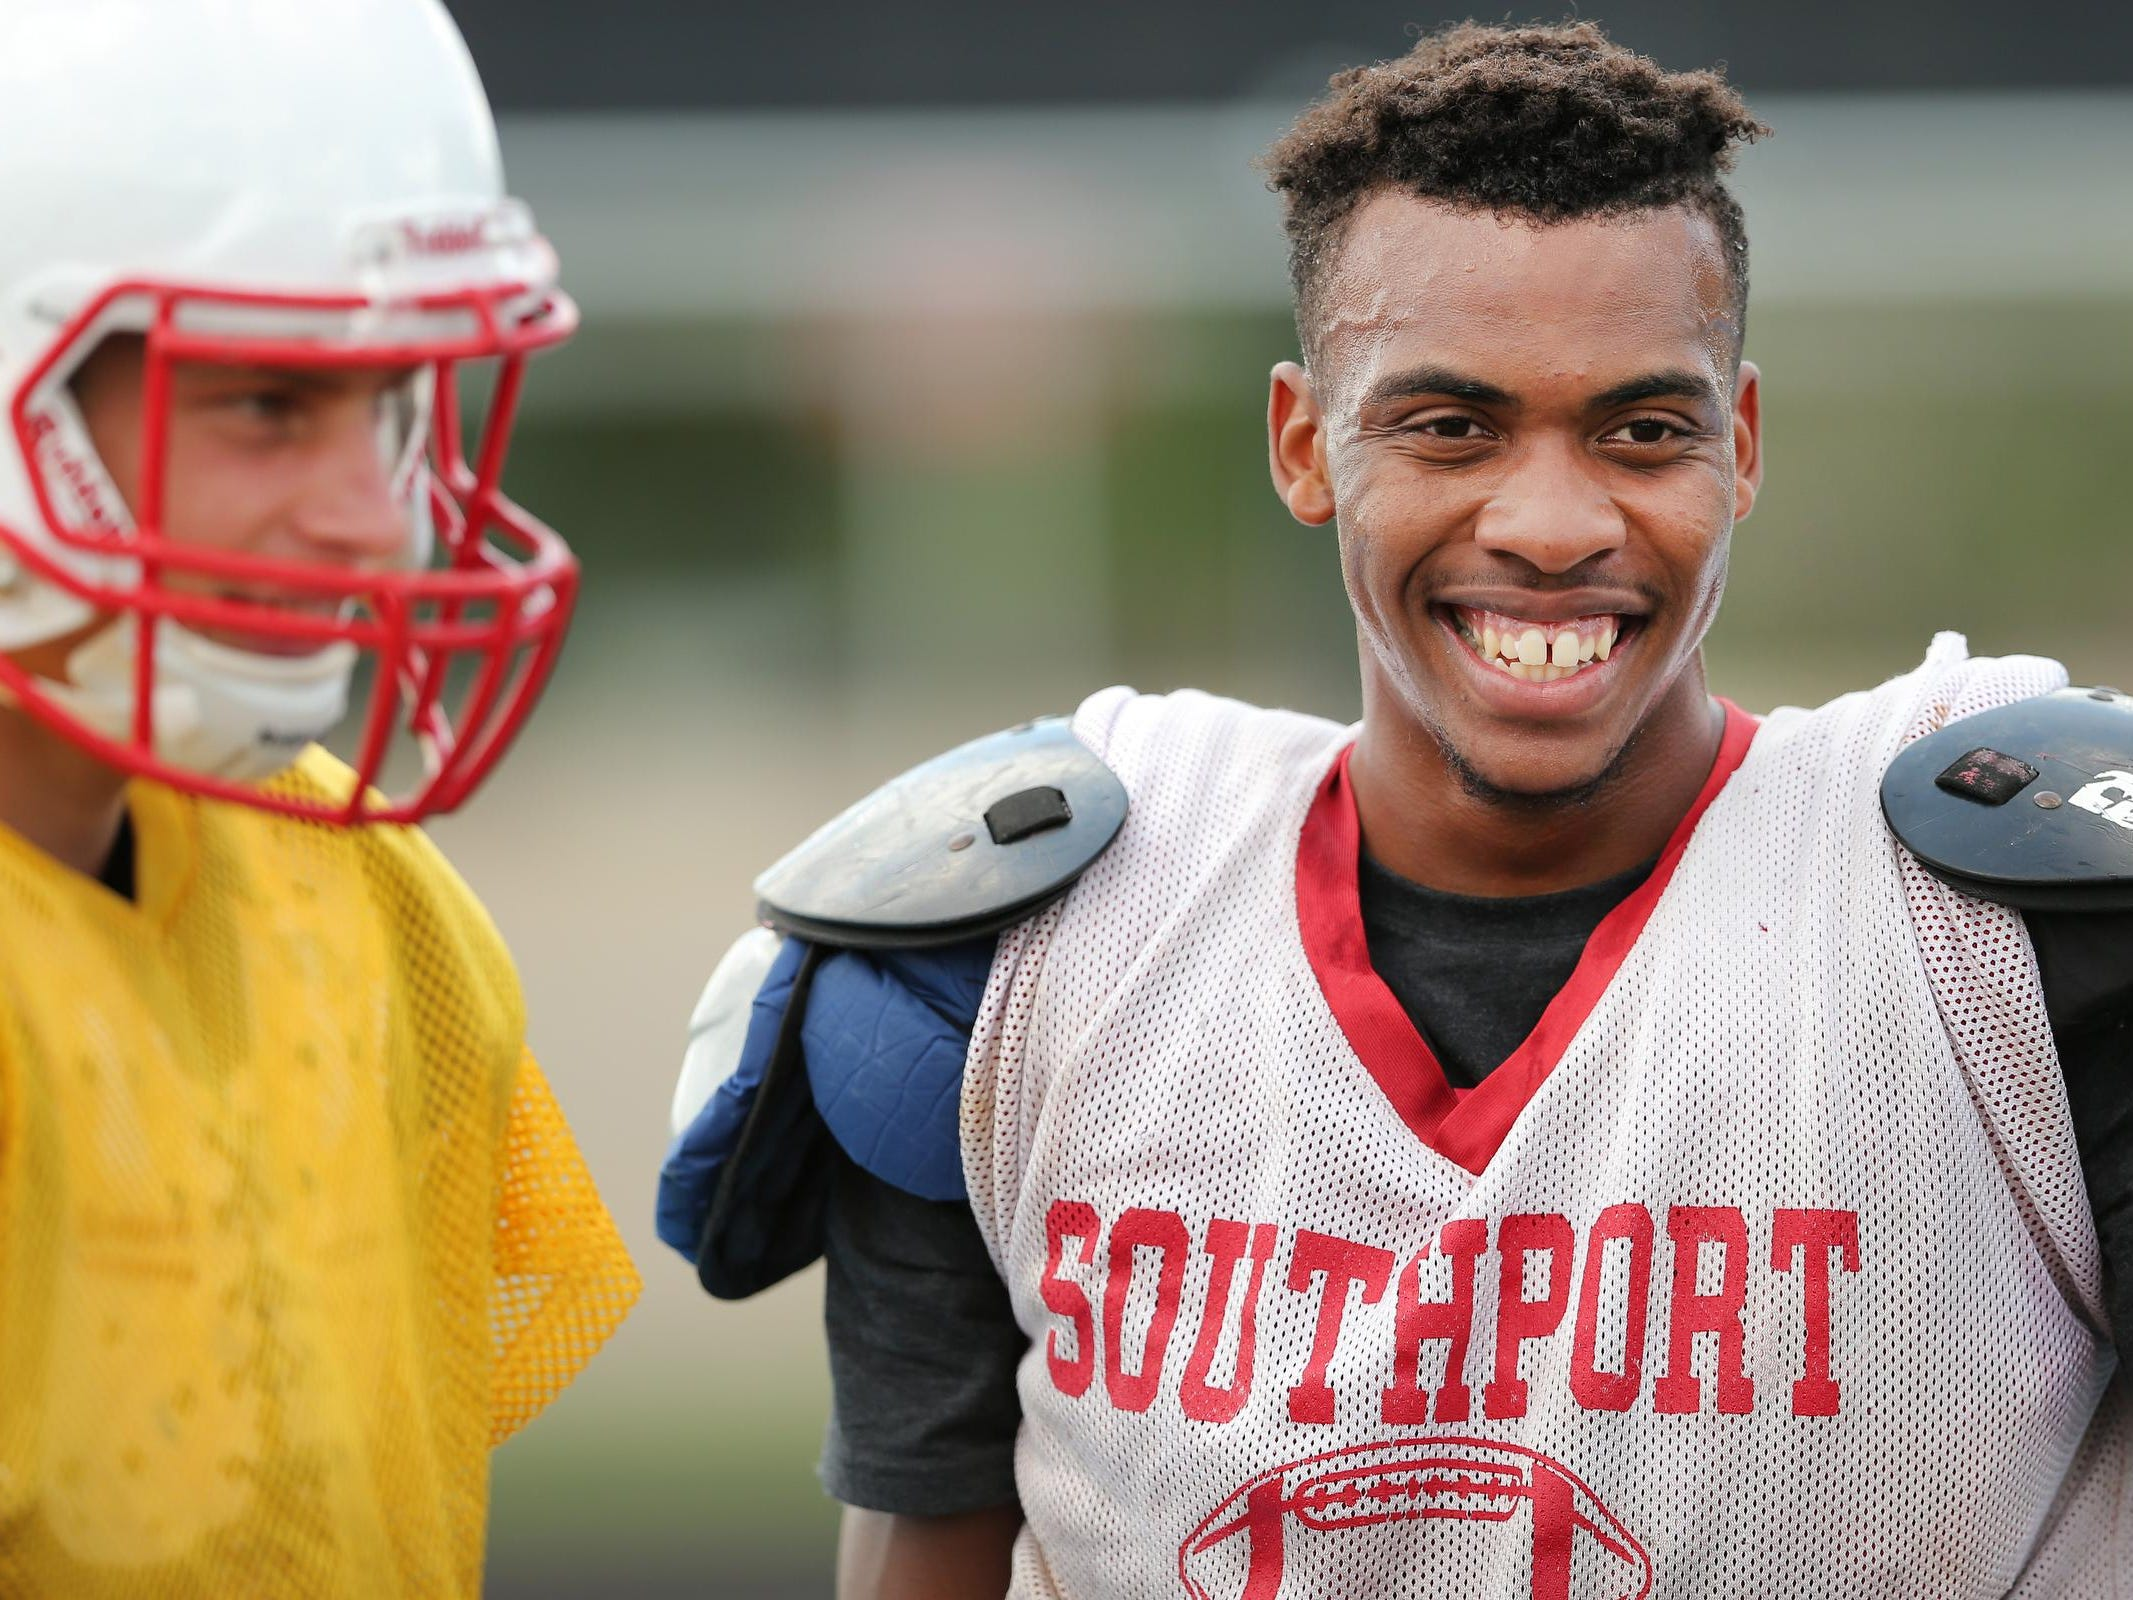 Southport's Paul Scruggs is all smiles while hanging with quarterback Luke Johnston between drills during practice, Aug. 12, 2015.